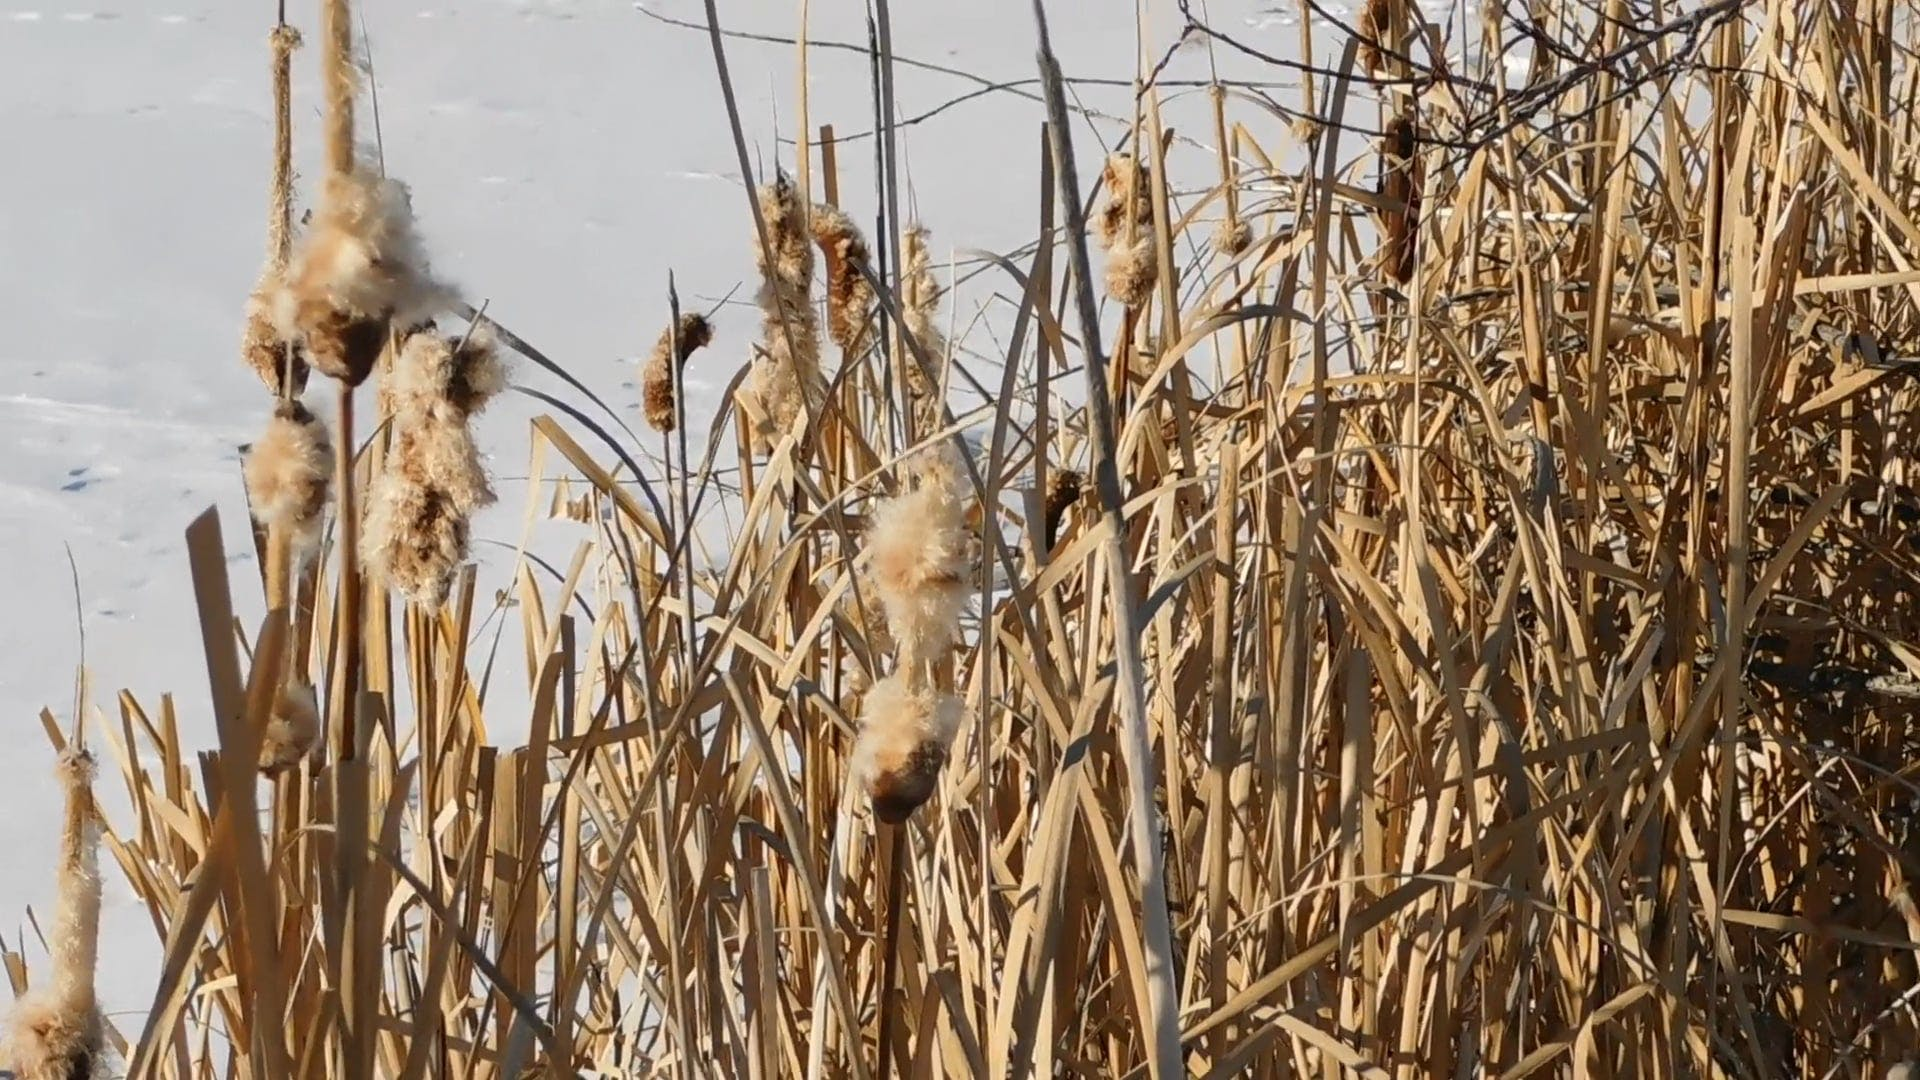 Dried Weeds Near A Frozen Lake